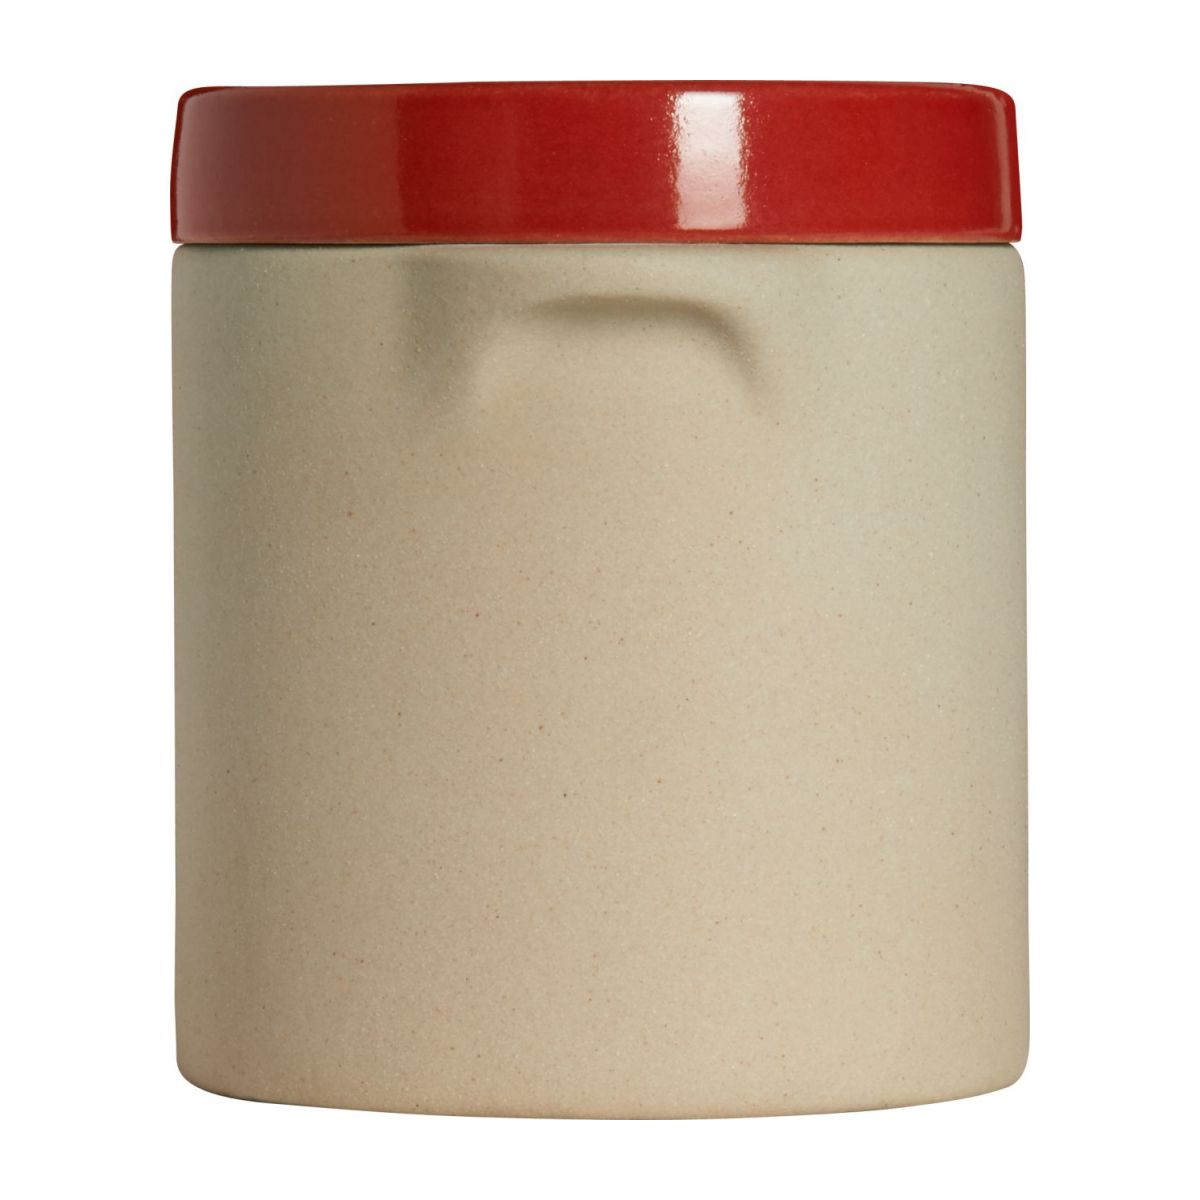 Box made in sandstone - 0,5L, natural and red n°6